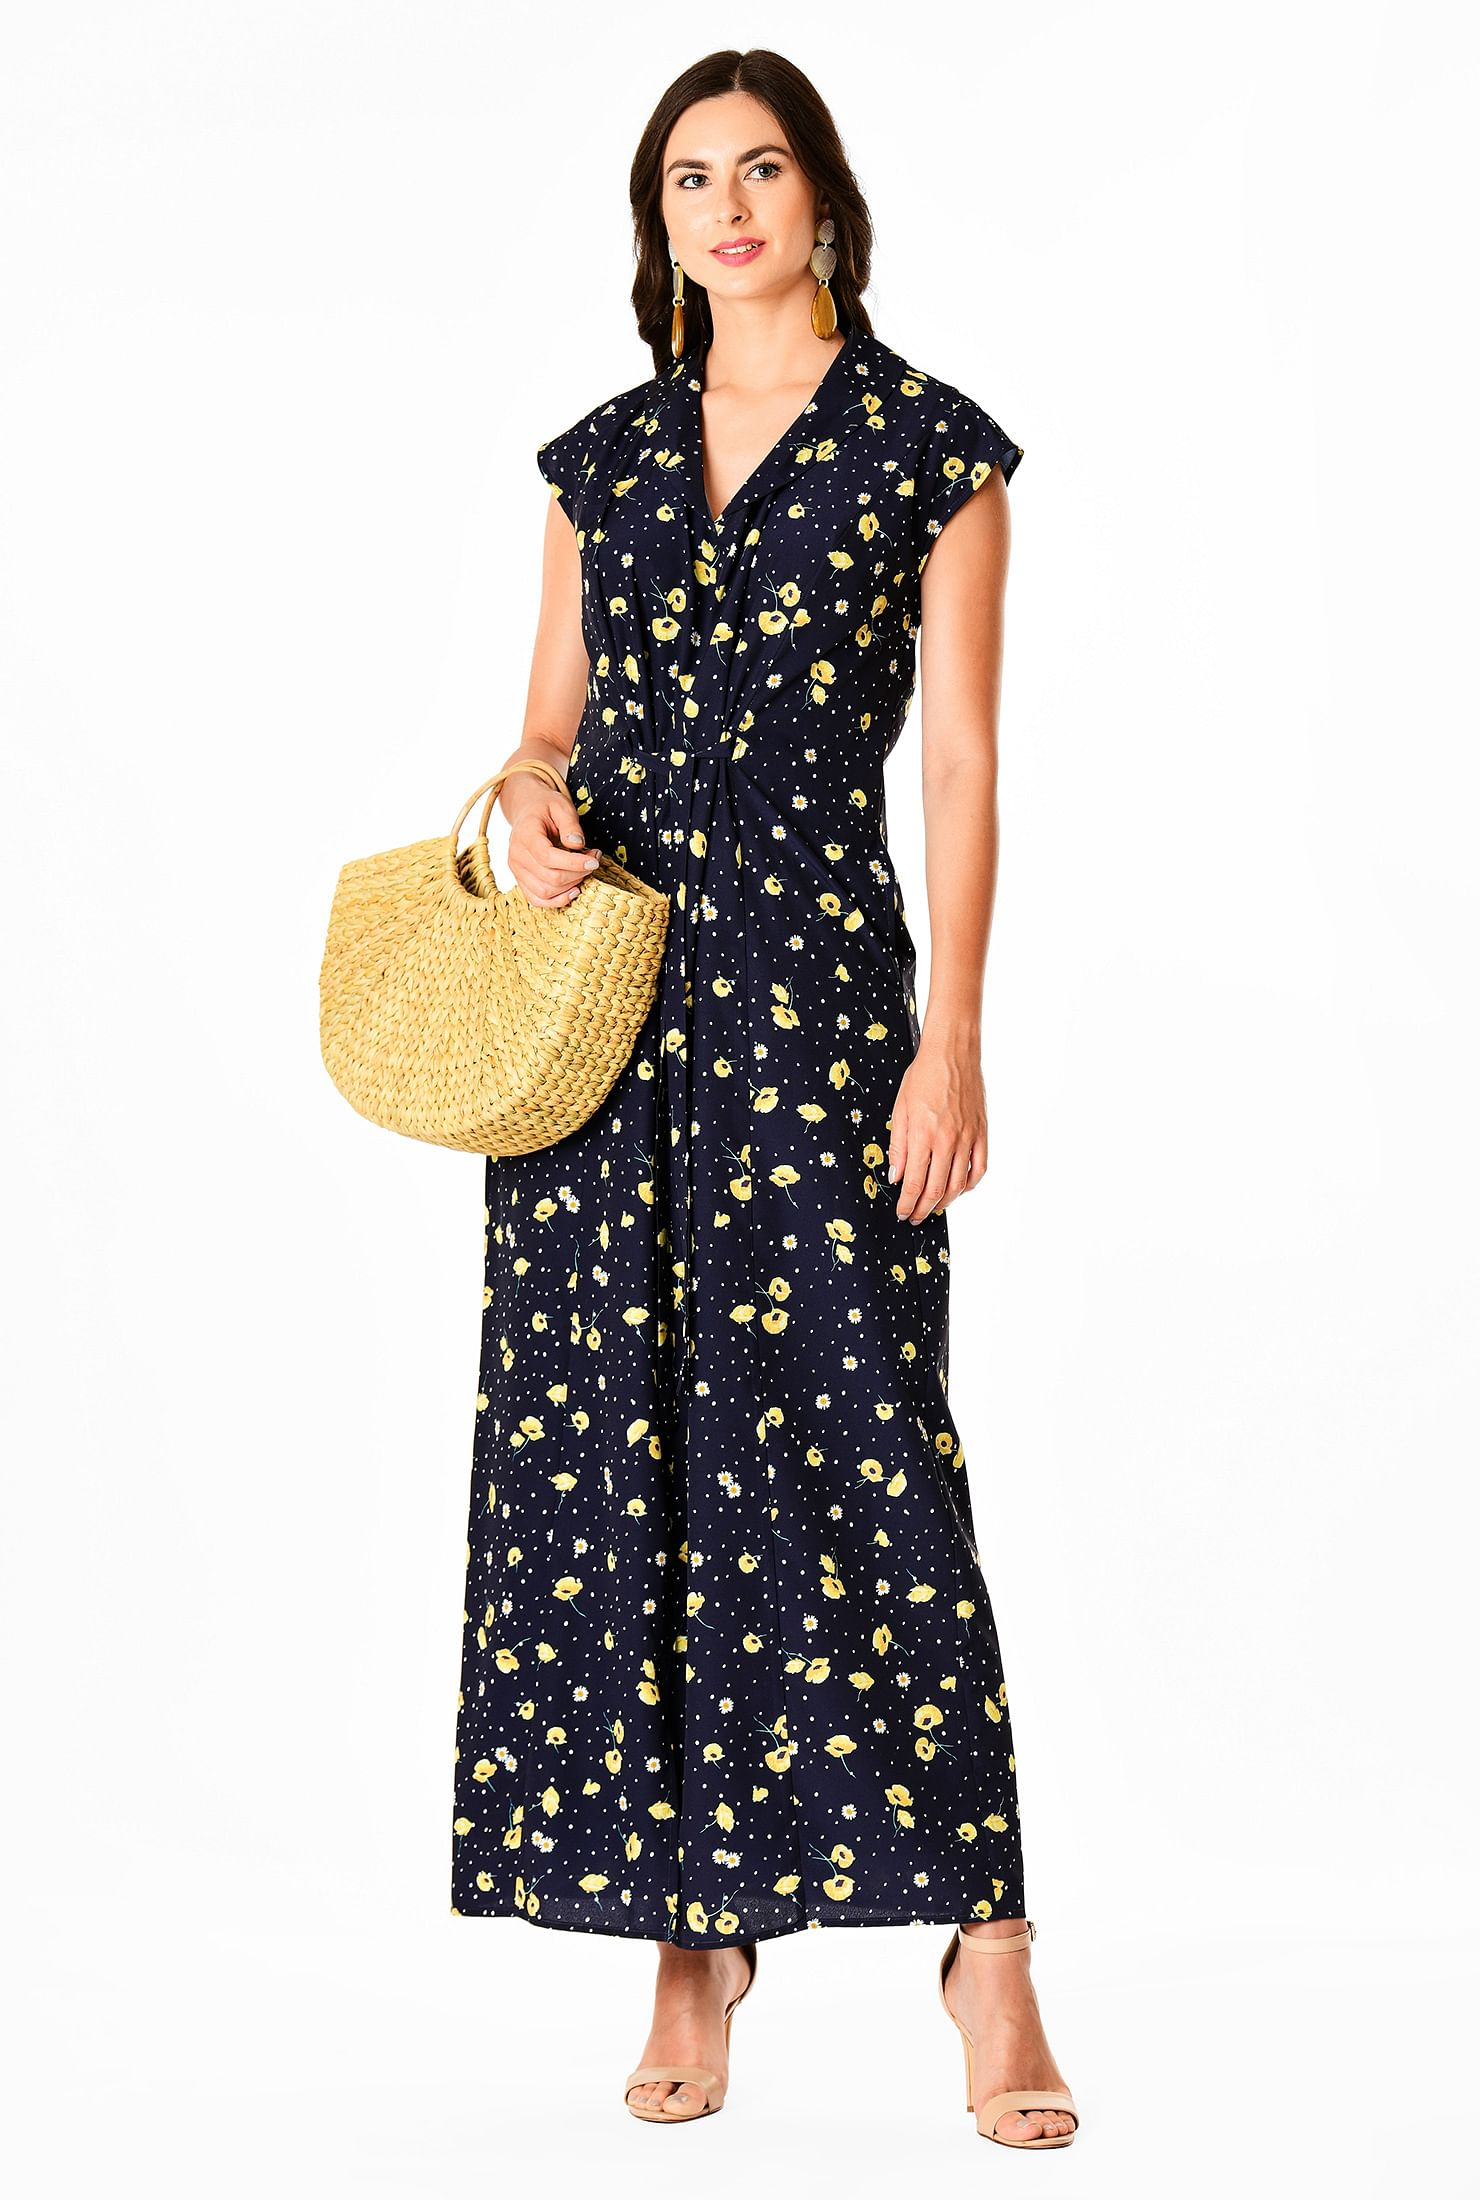 The Floral Print Crepe Shift Style Dress travel product recommended by Lindsay Wells on Lifney.